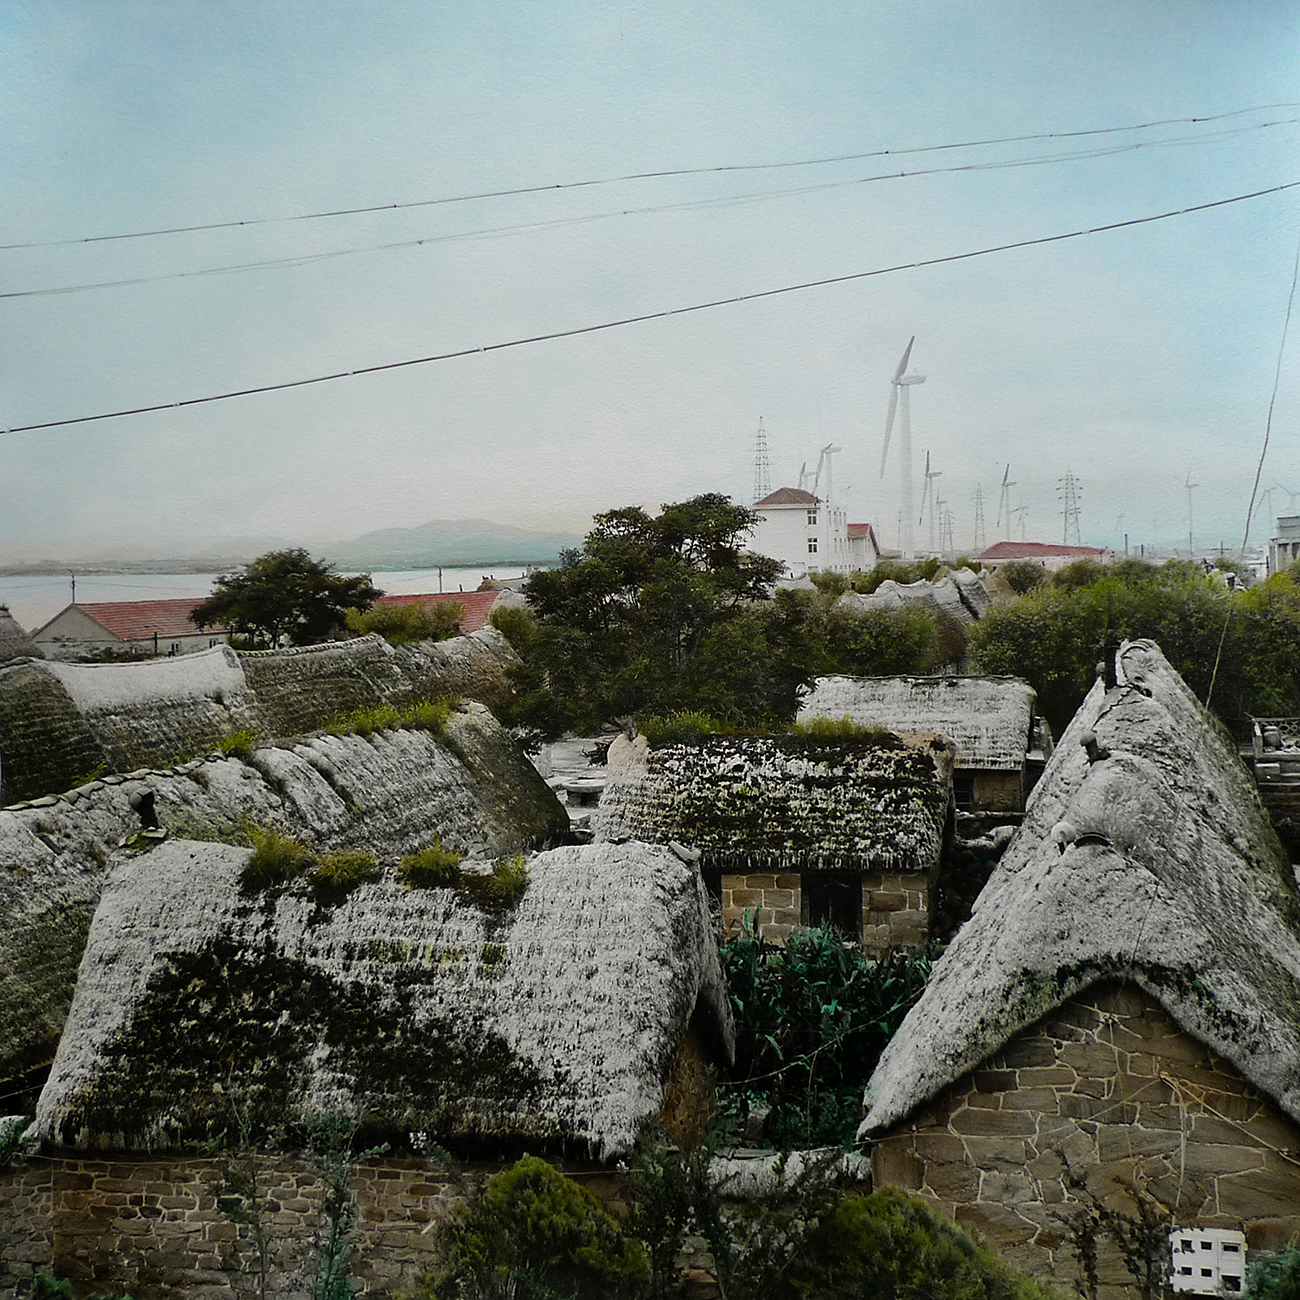 """Yajing Liu, """"Once There Was [海草房]"""", from the Seaweed House [海草房] series, 2012, hand-colored photograph"""